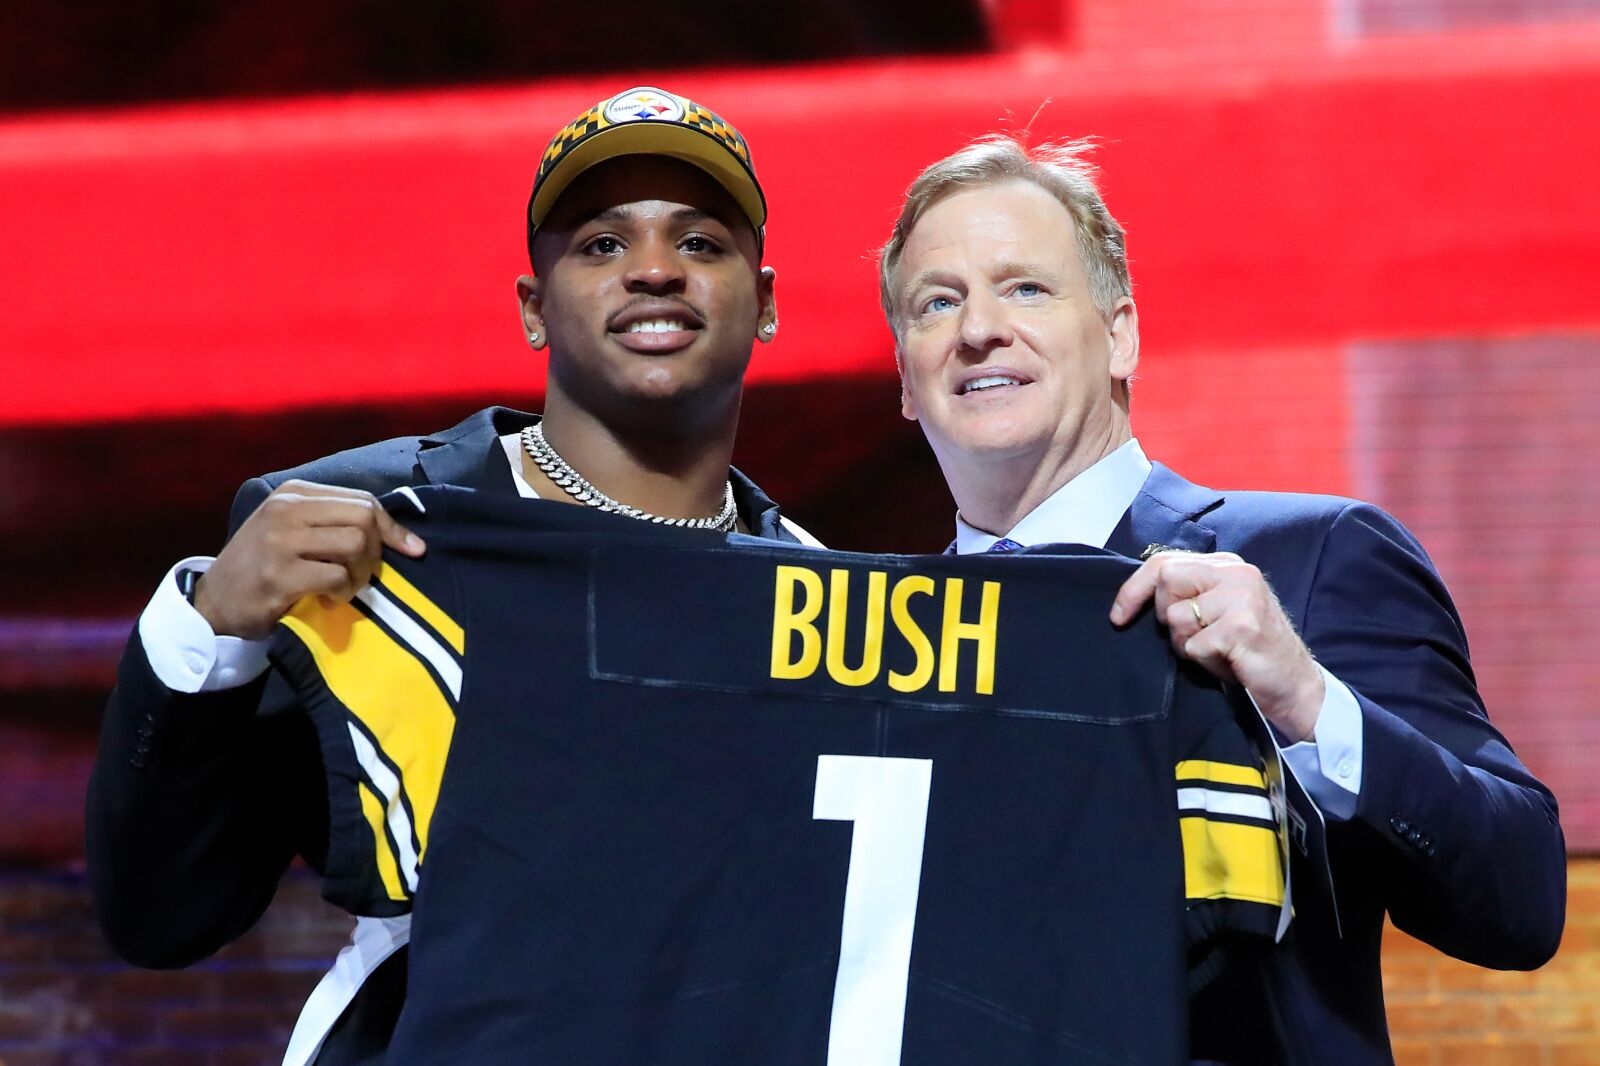 dde7c5e4326 What the heck was that suit Devin Bush was wearing at the NFL Draft?